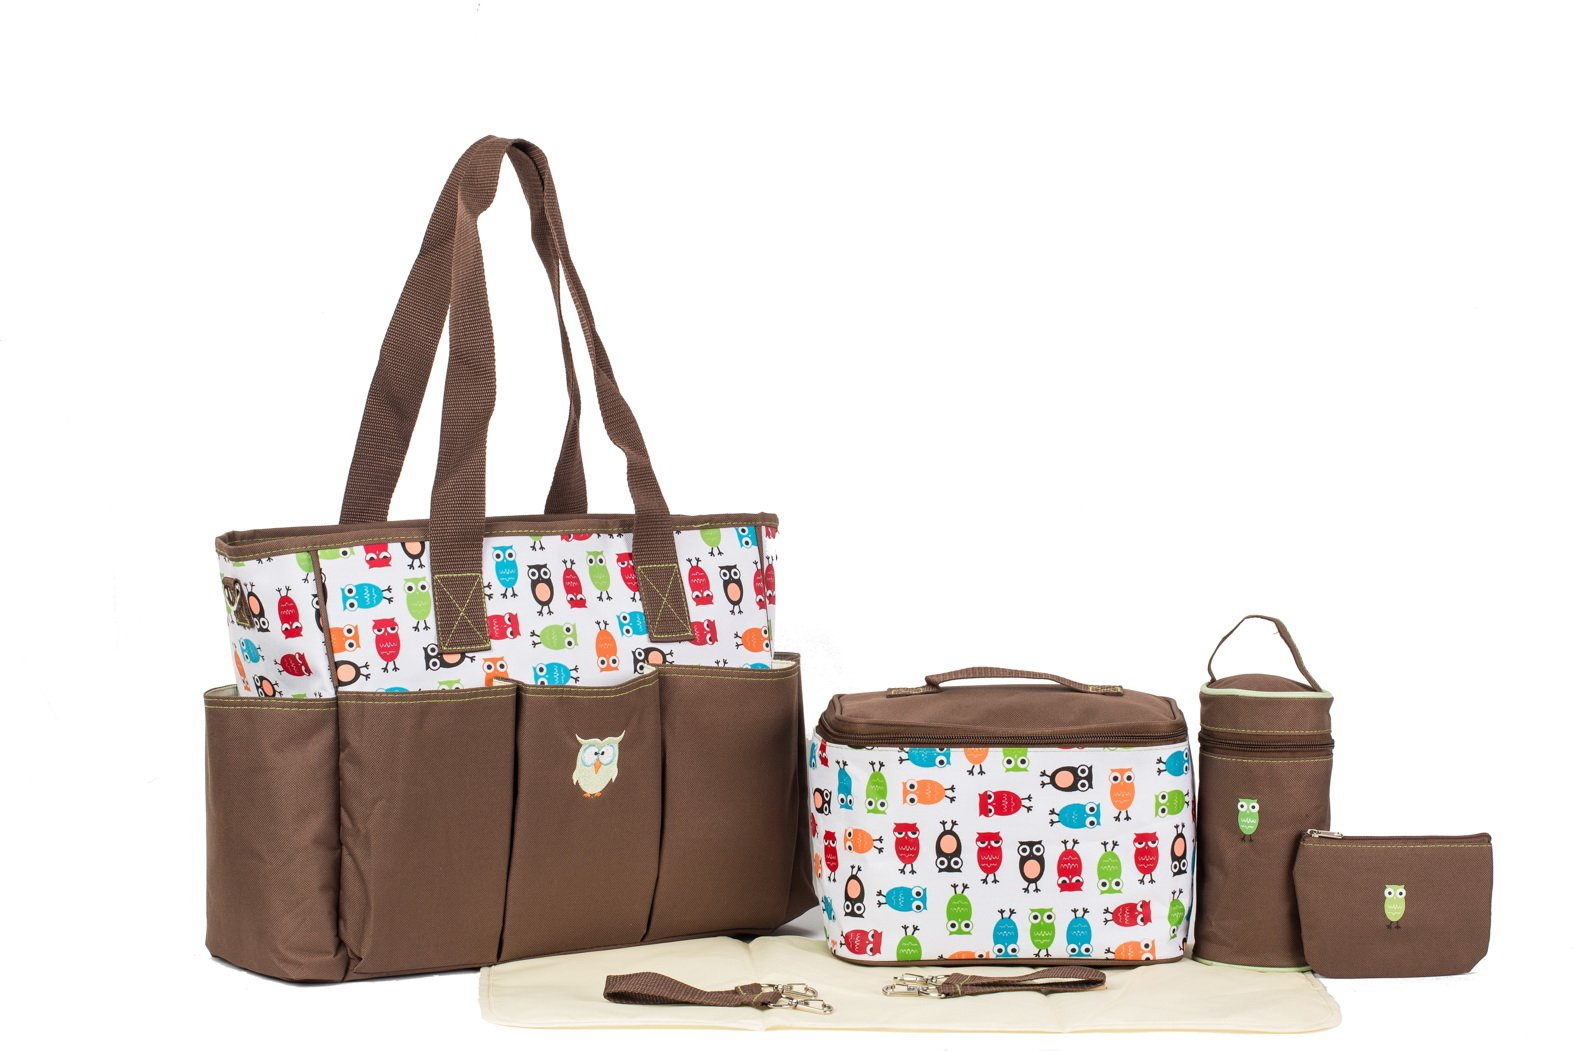 diaper bag designer brands 8r2c  Brand New SoHo, Soren The Owls 7 in 1 Deluxe Diaper Bag *Limited time  offer*